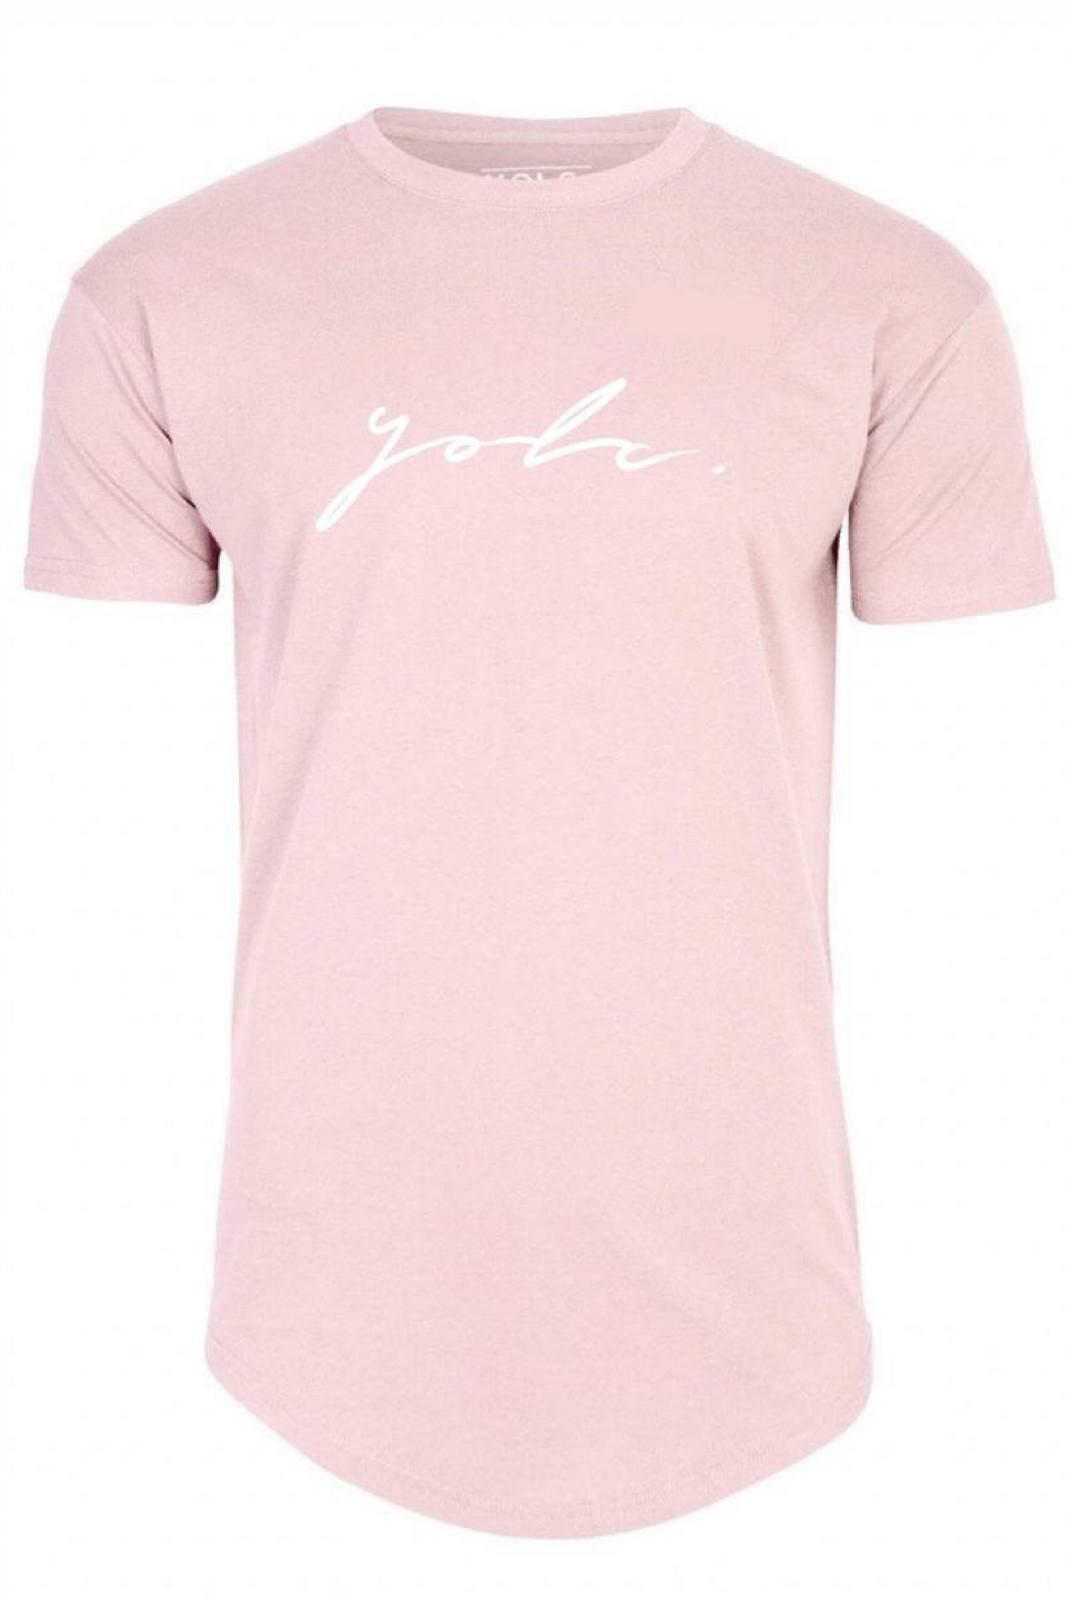 T-Shirts - Curved Hem Signature T-Shirt Pink